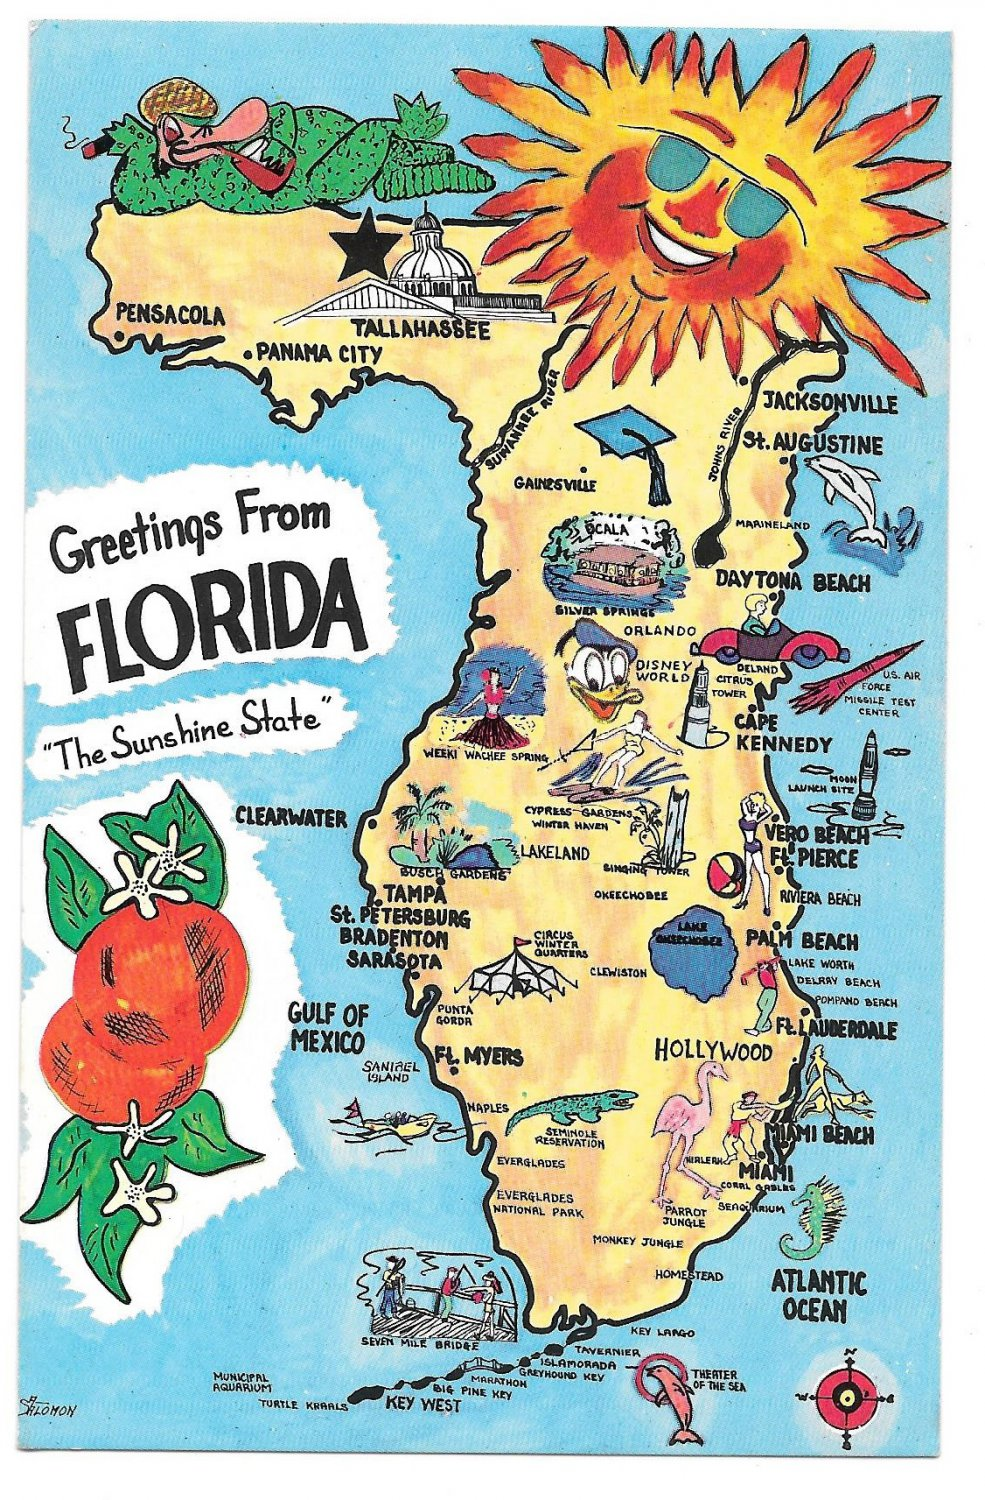 TopRated Tourist Attractions In Orlando PlanetWare Map Of - Florida map cape coral